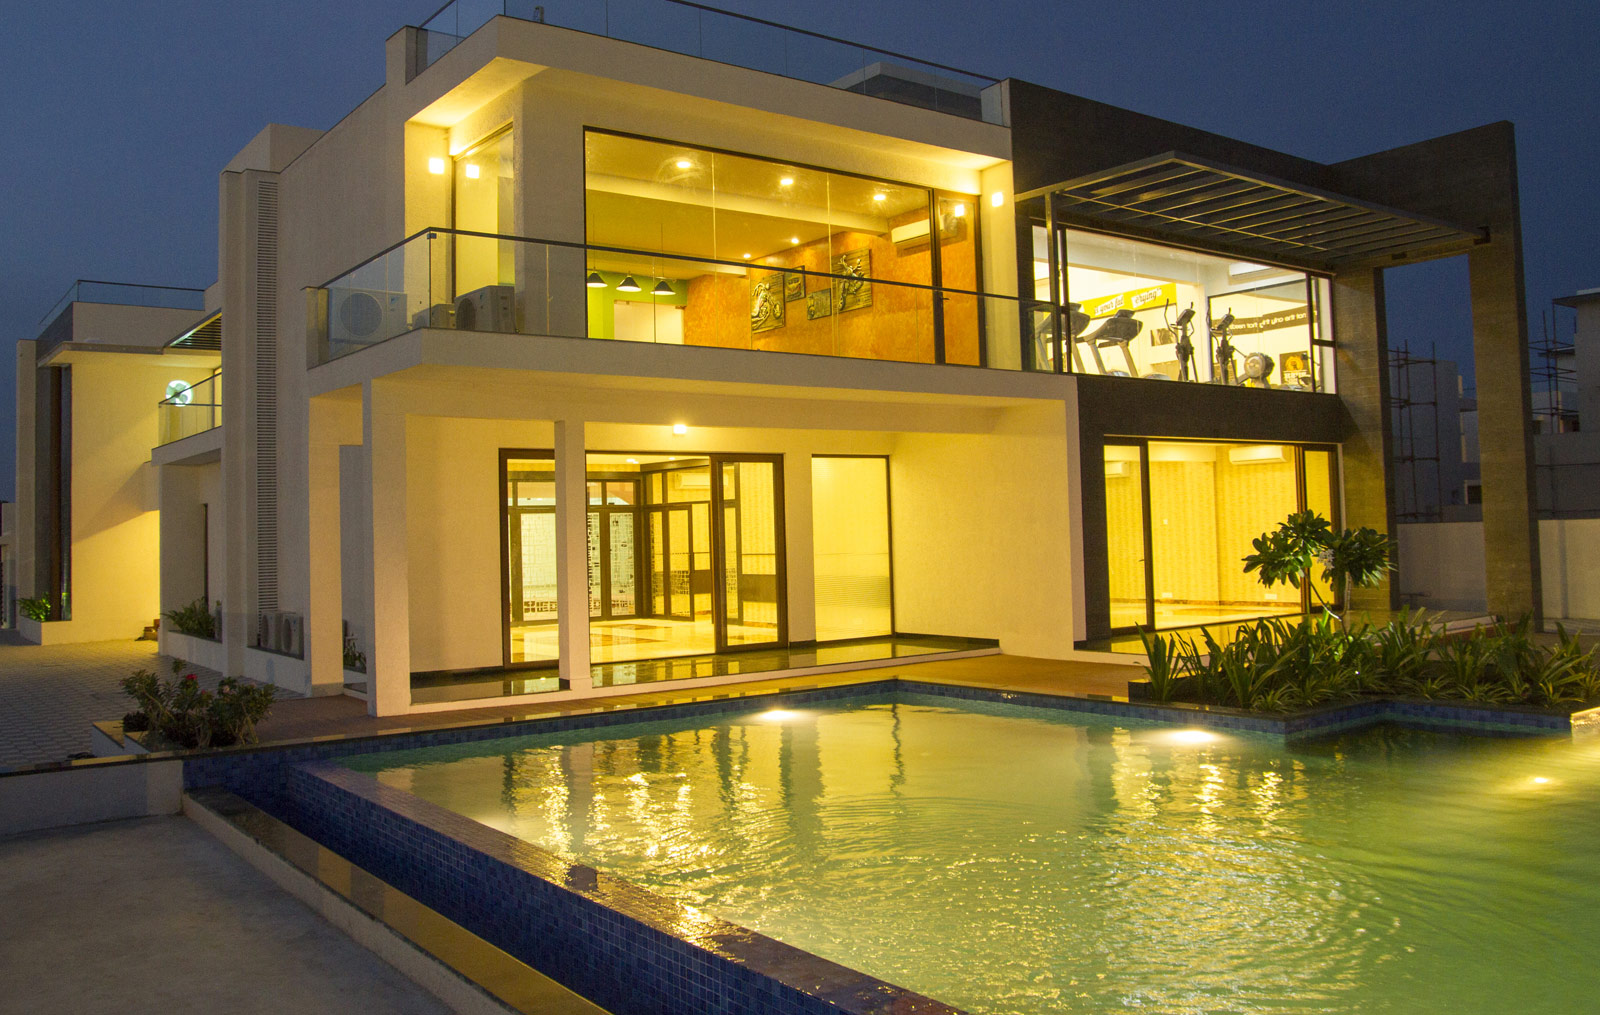 Telephone Jack Wiring Individual Villas In Chennai Luxury Villas For Sale Voora